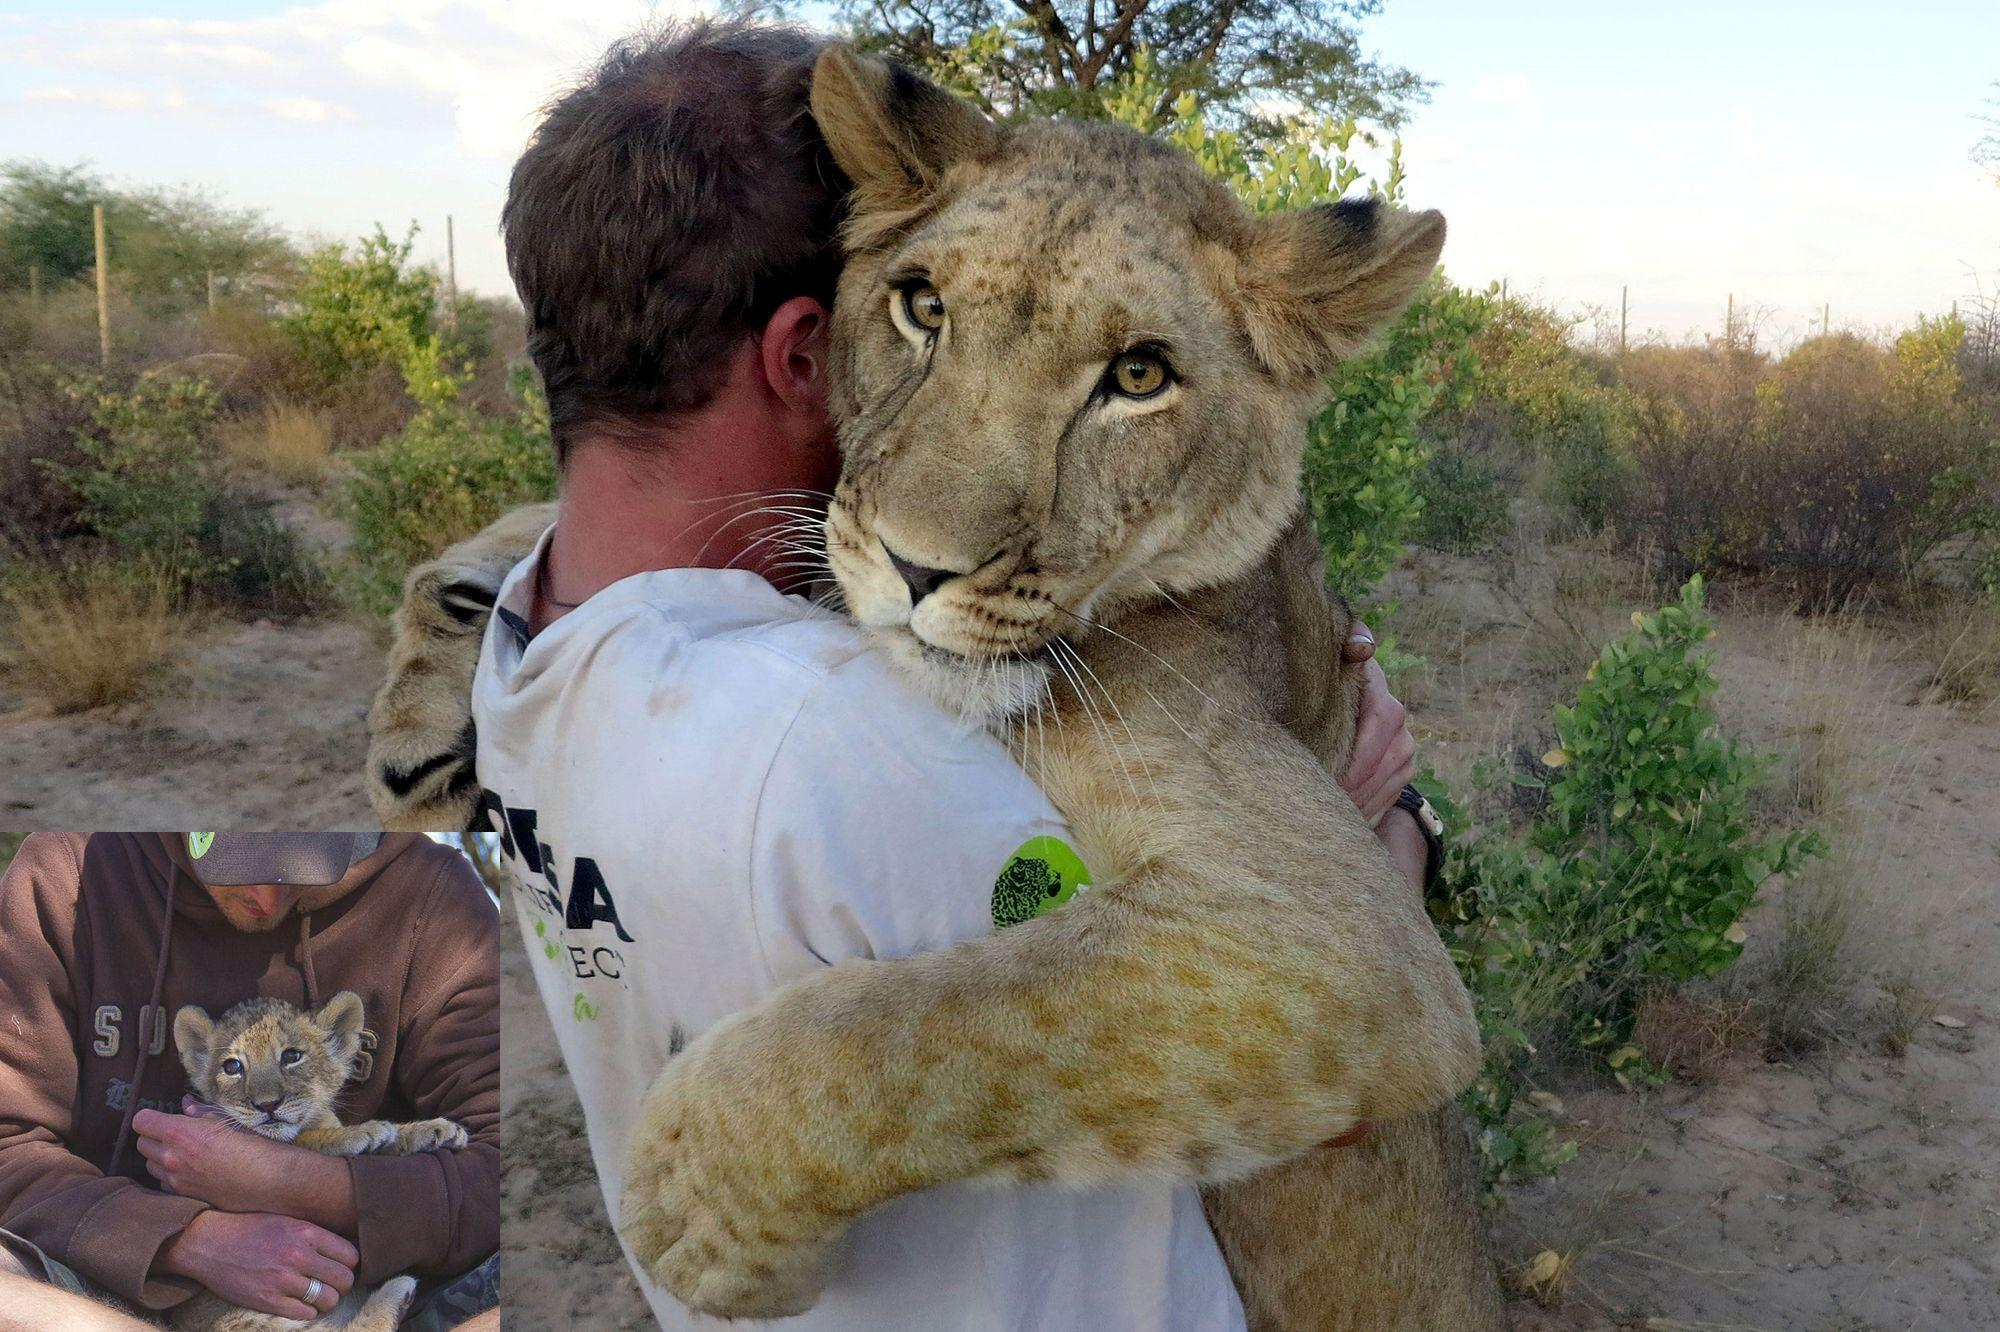 Lioness Reunites With Trainer After Years Apart: Her Response Will Surprise You!